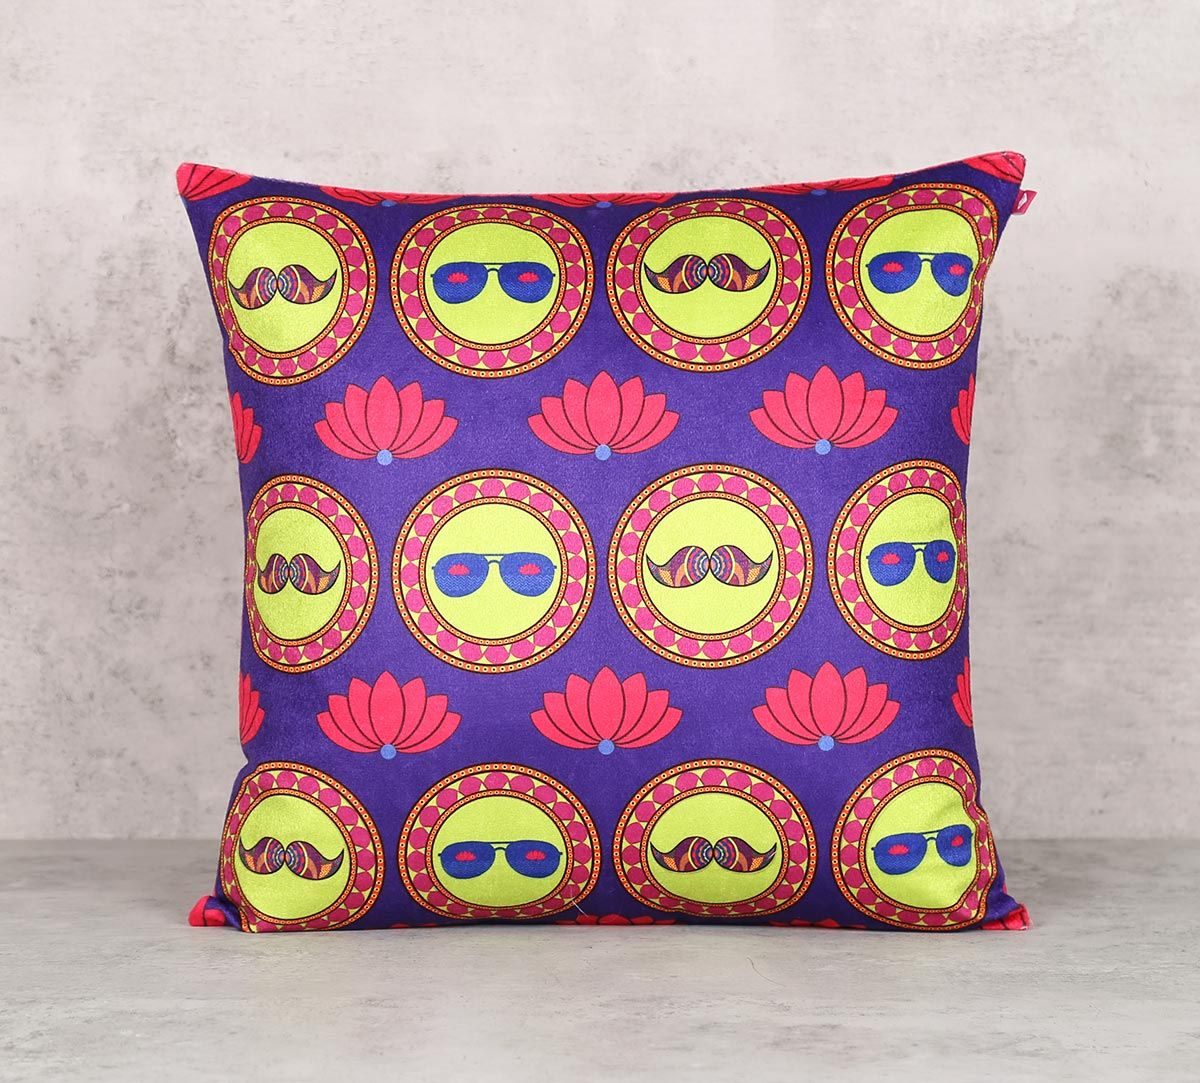 India Circus C'est La Vie Blend Velvet 16 x 16 Cushion Cover